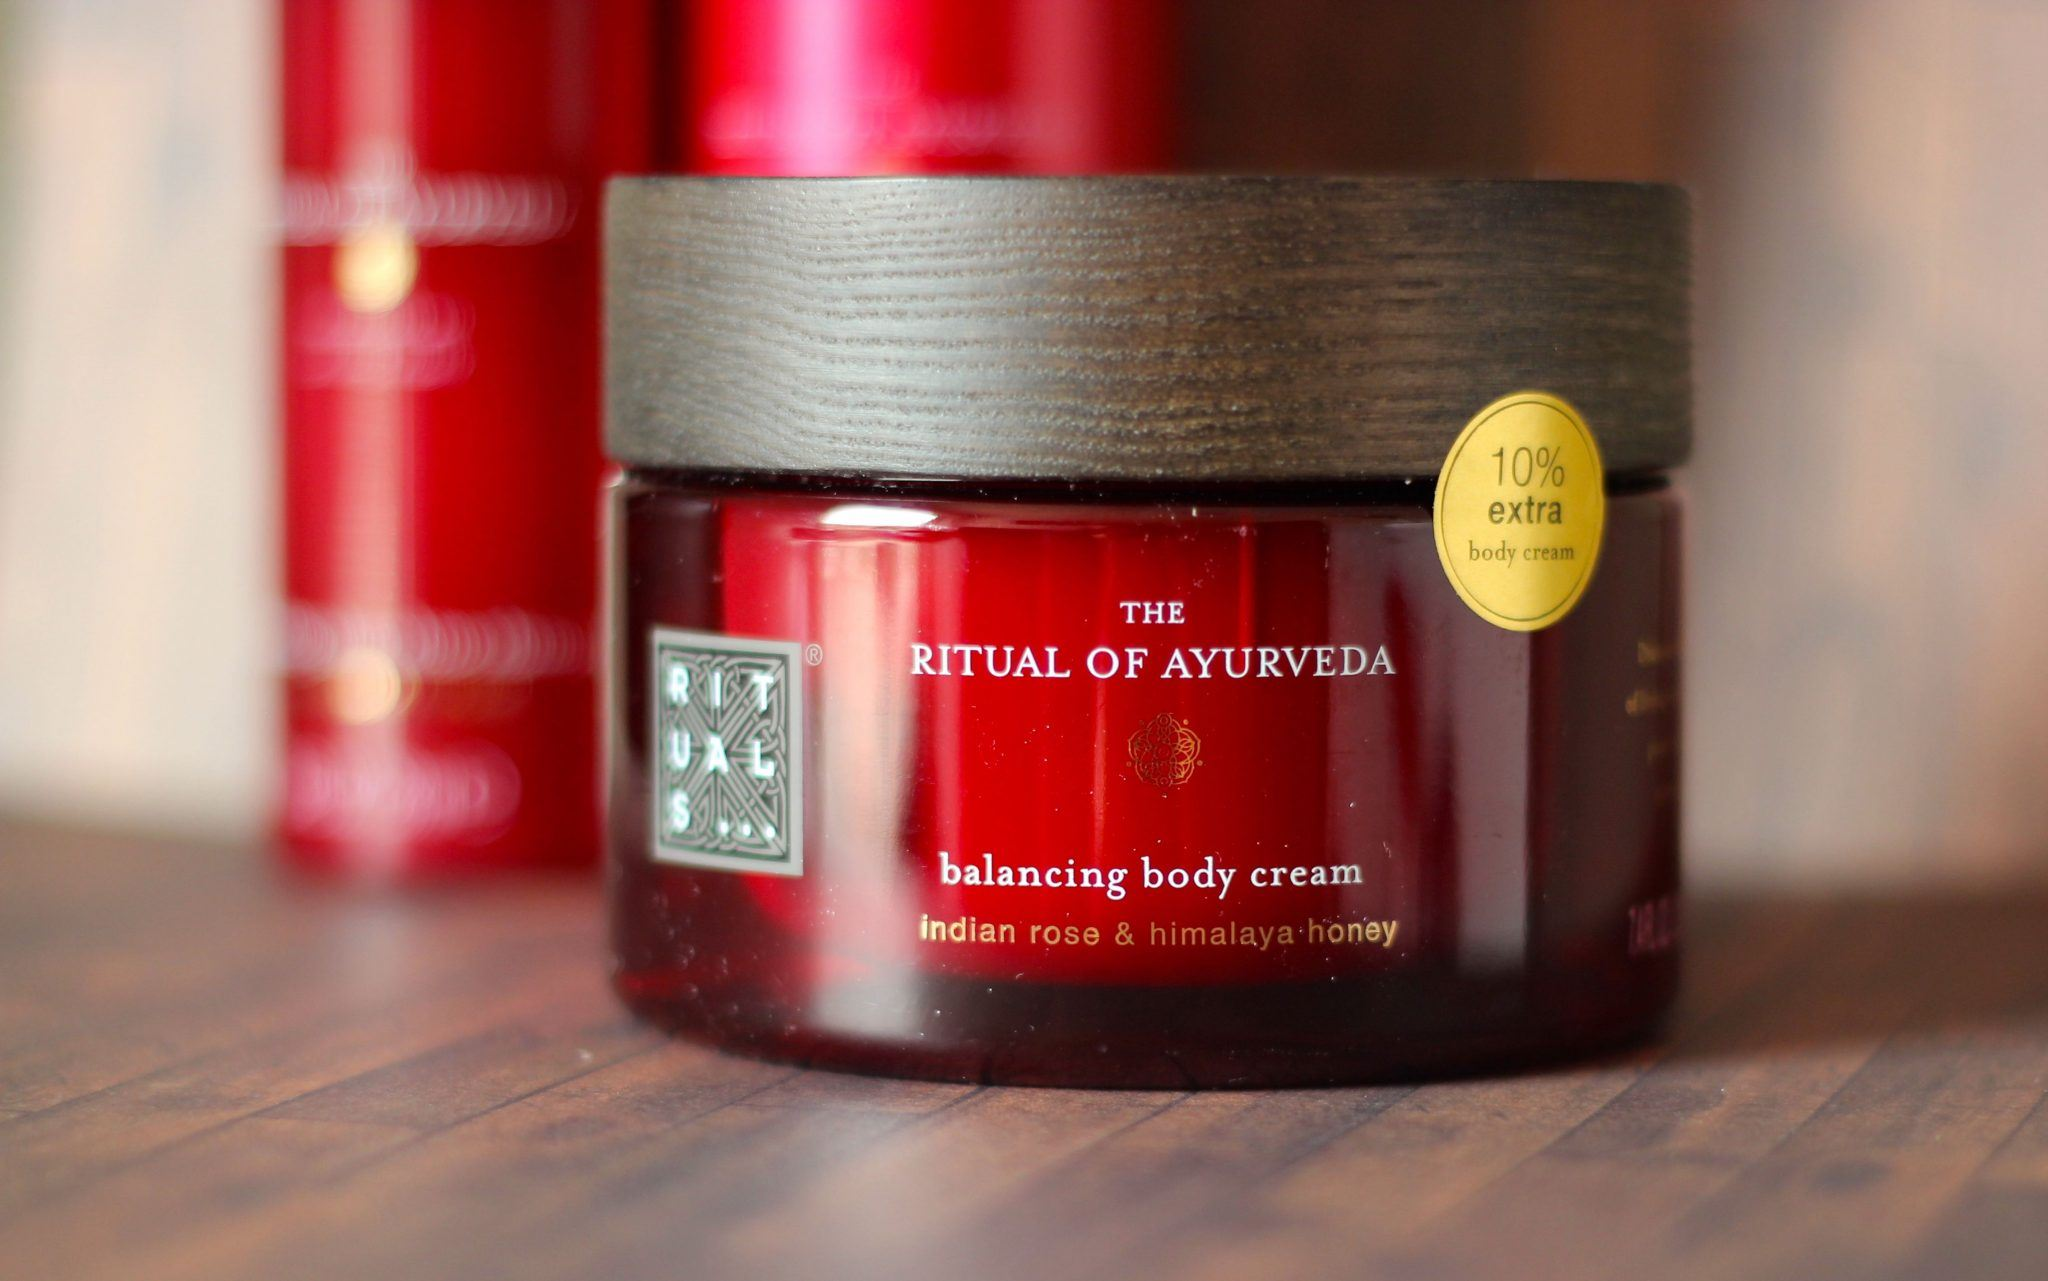 Ritual of Ayurveda balancing body cream